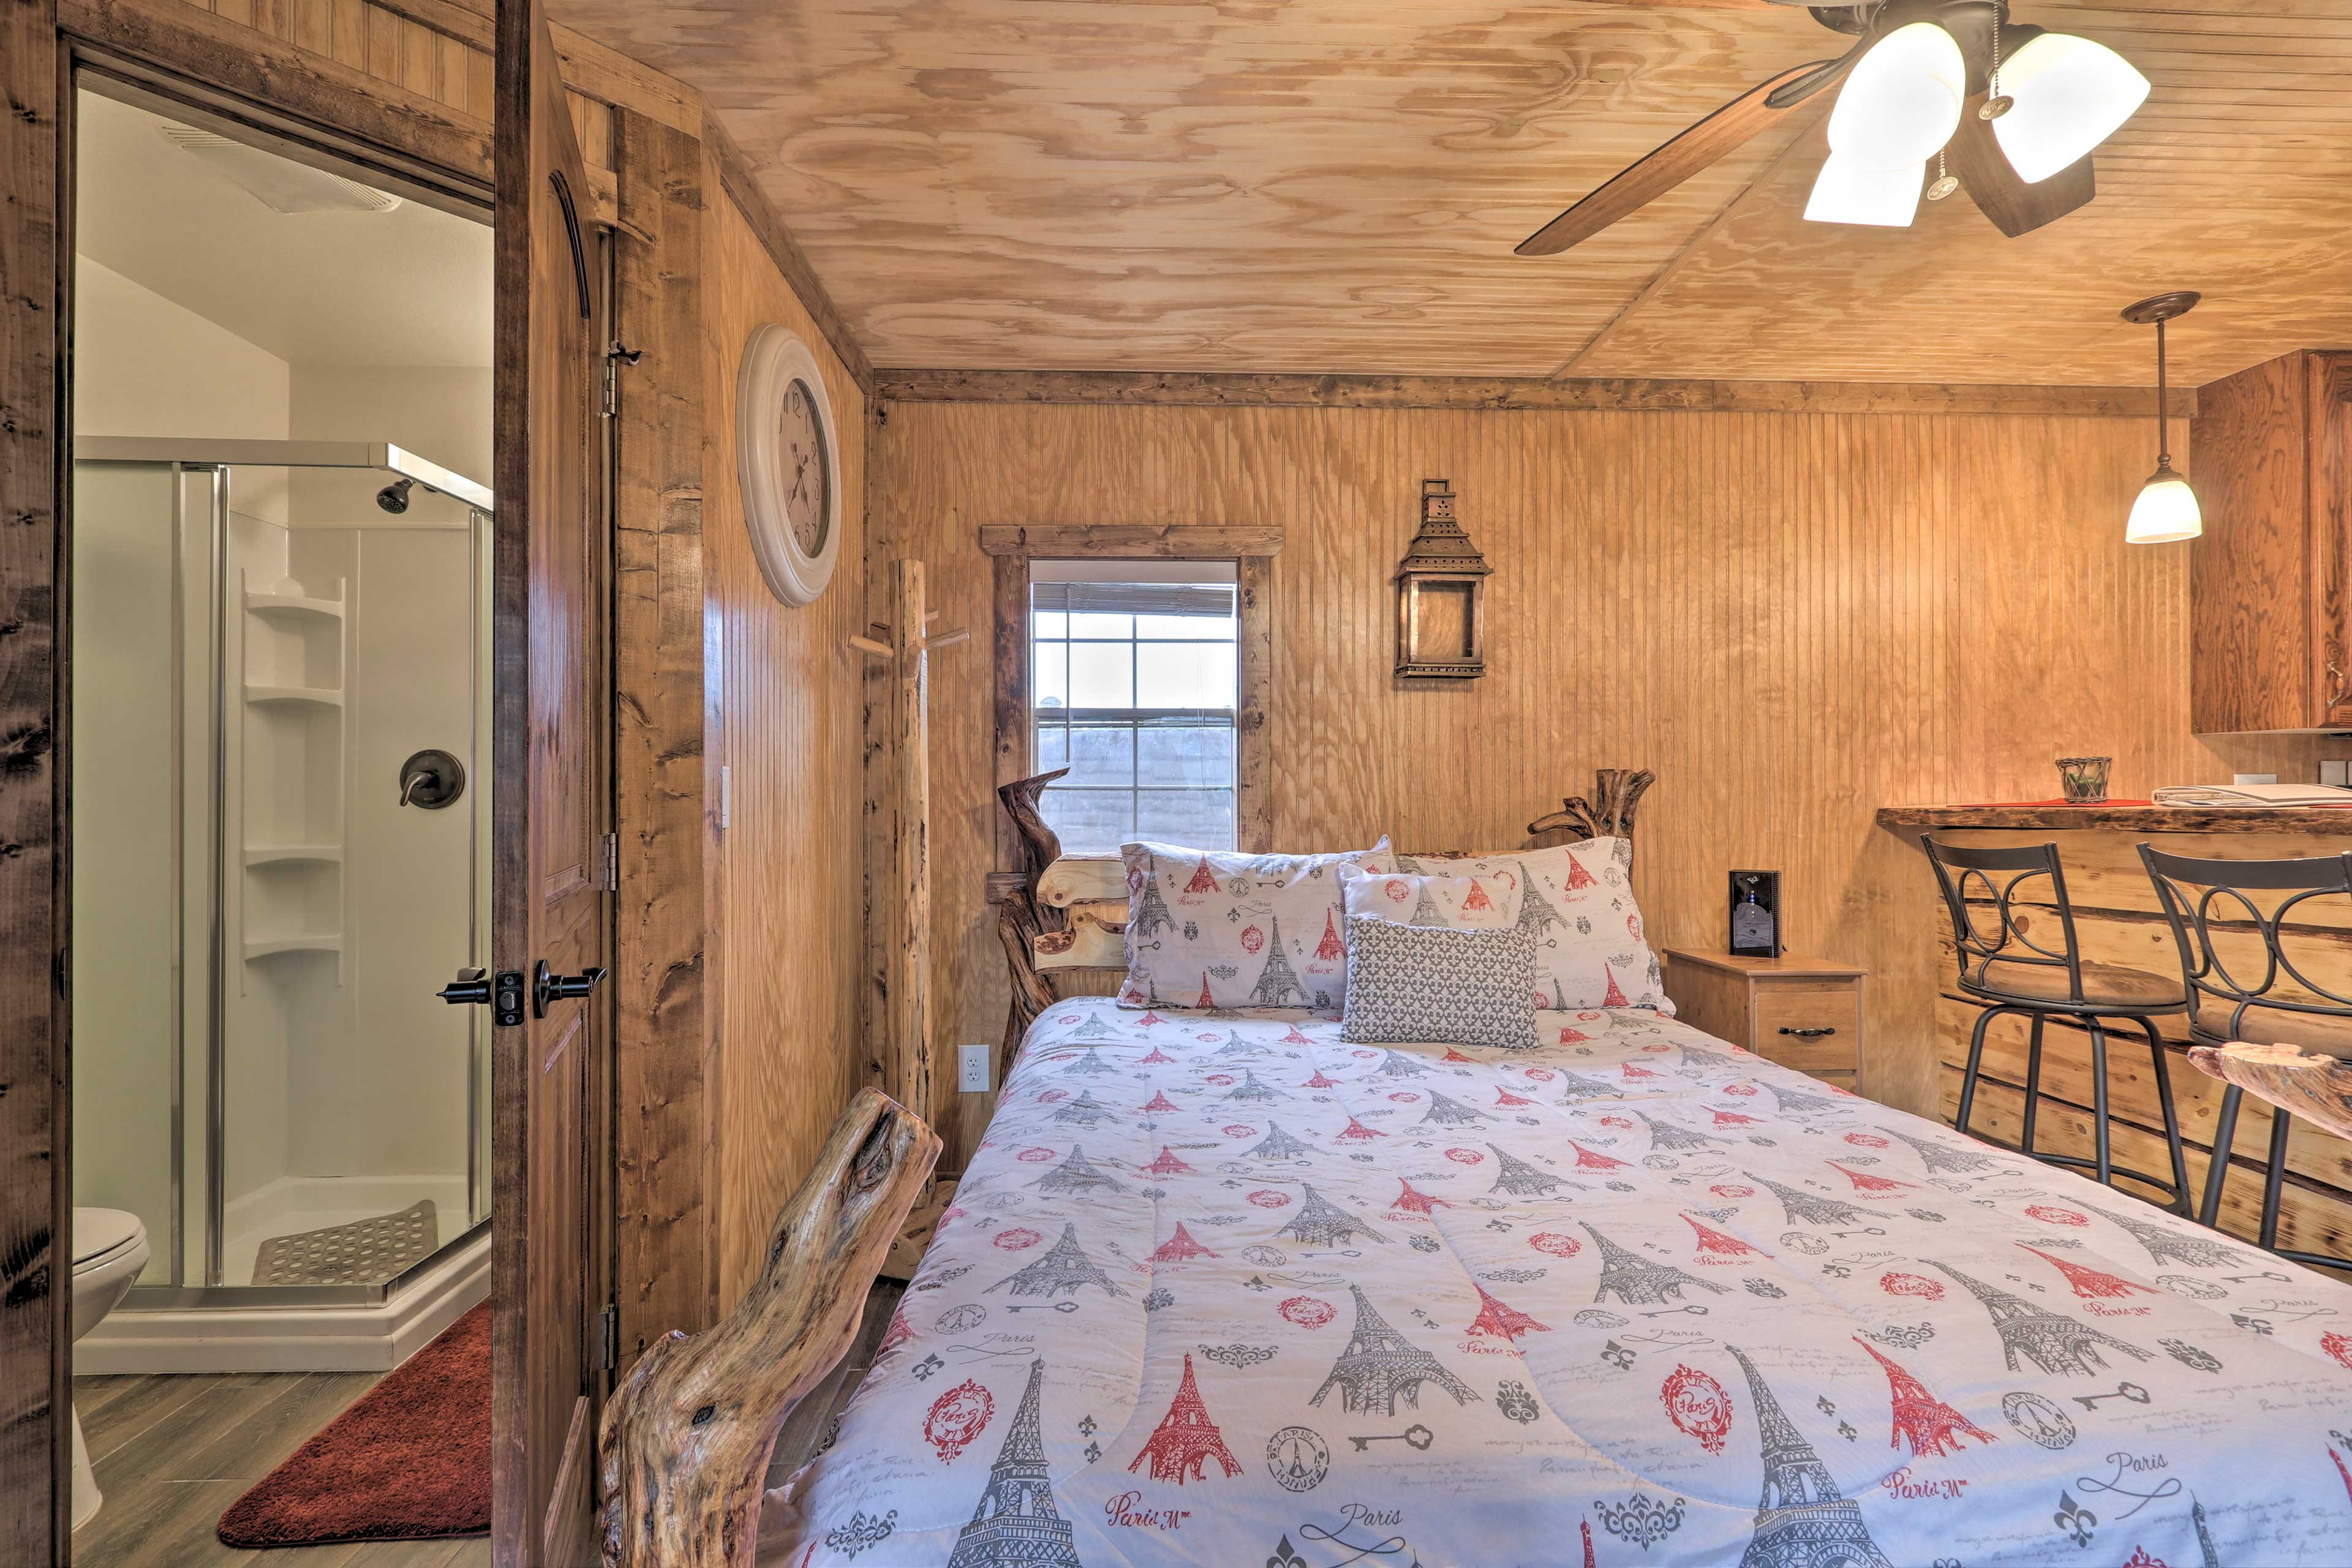 The bathroom is located next to the queen bed.